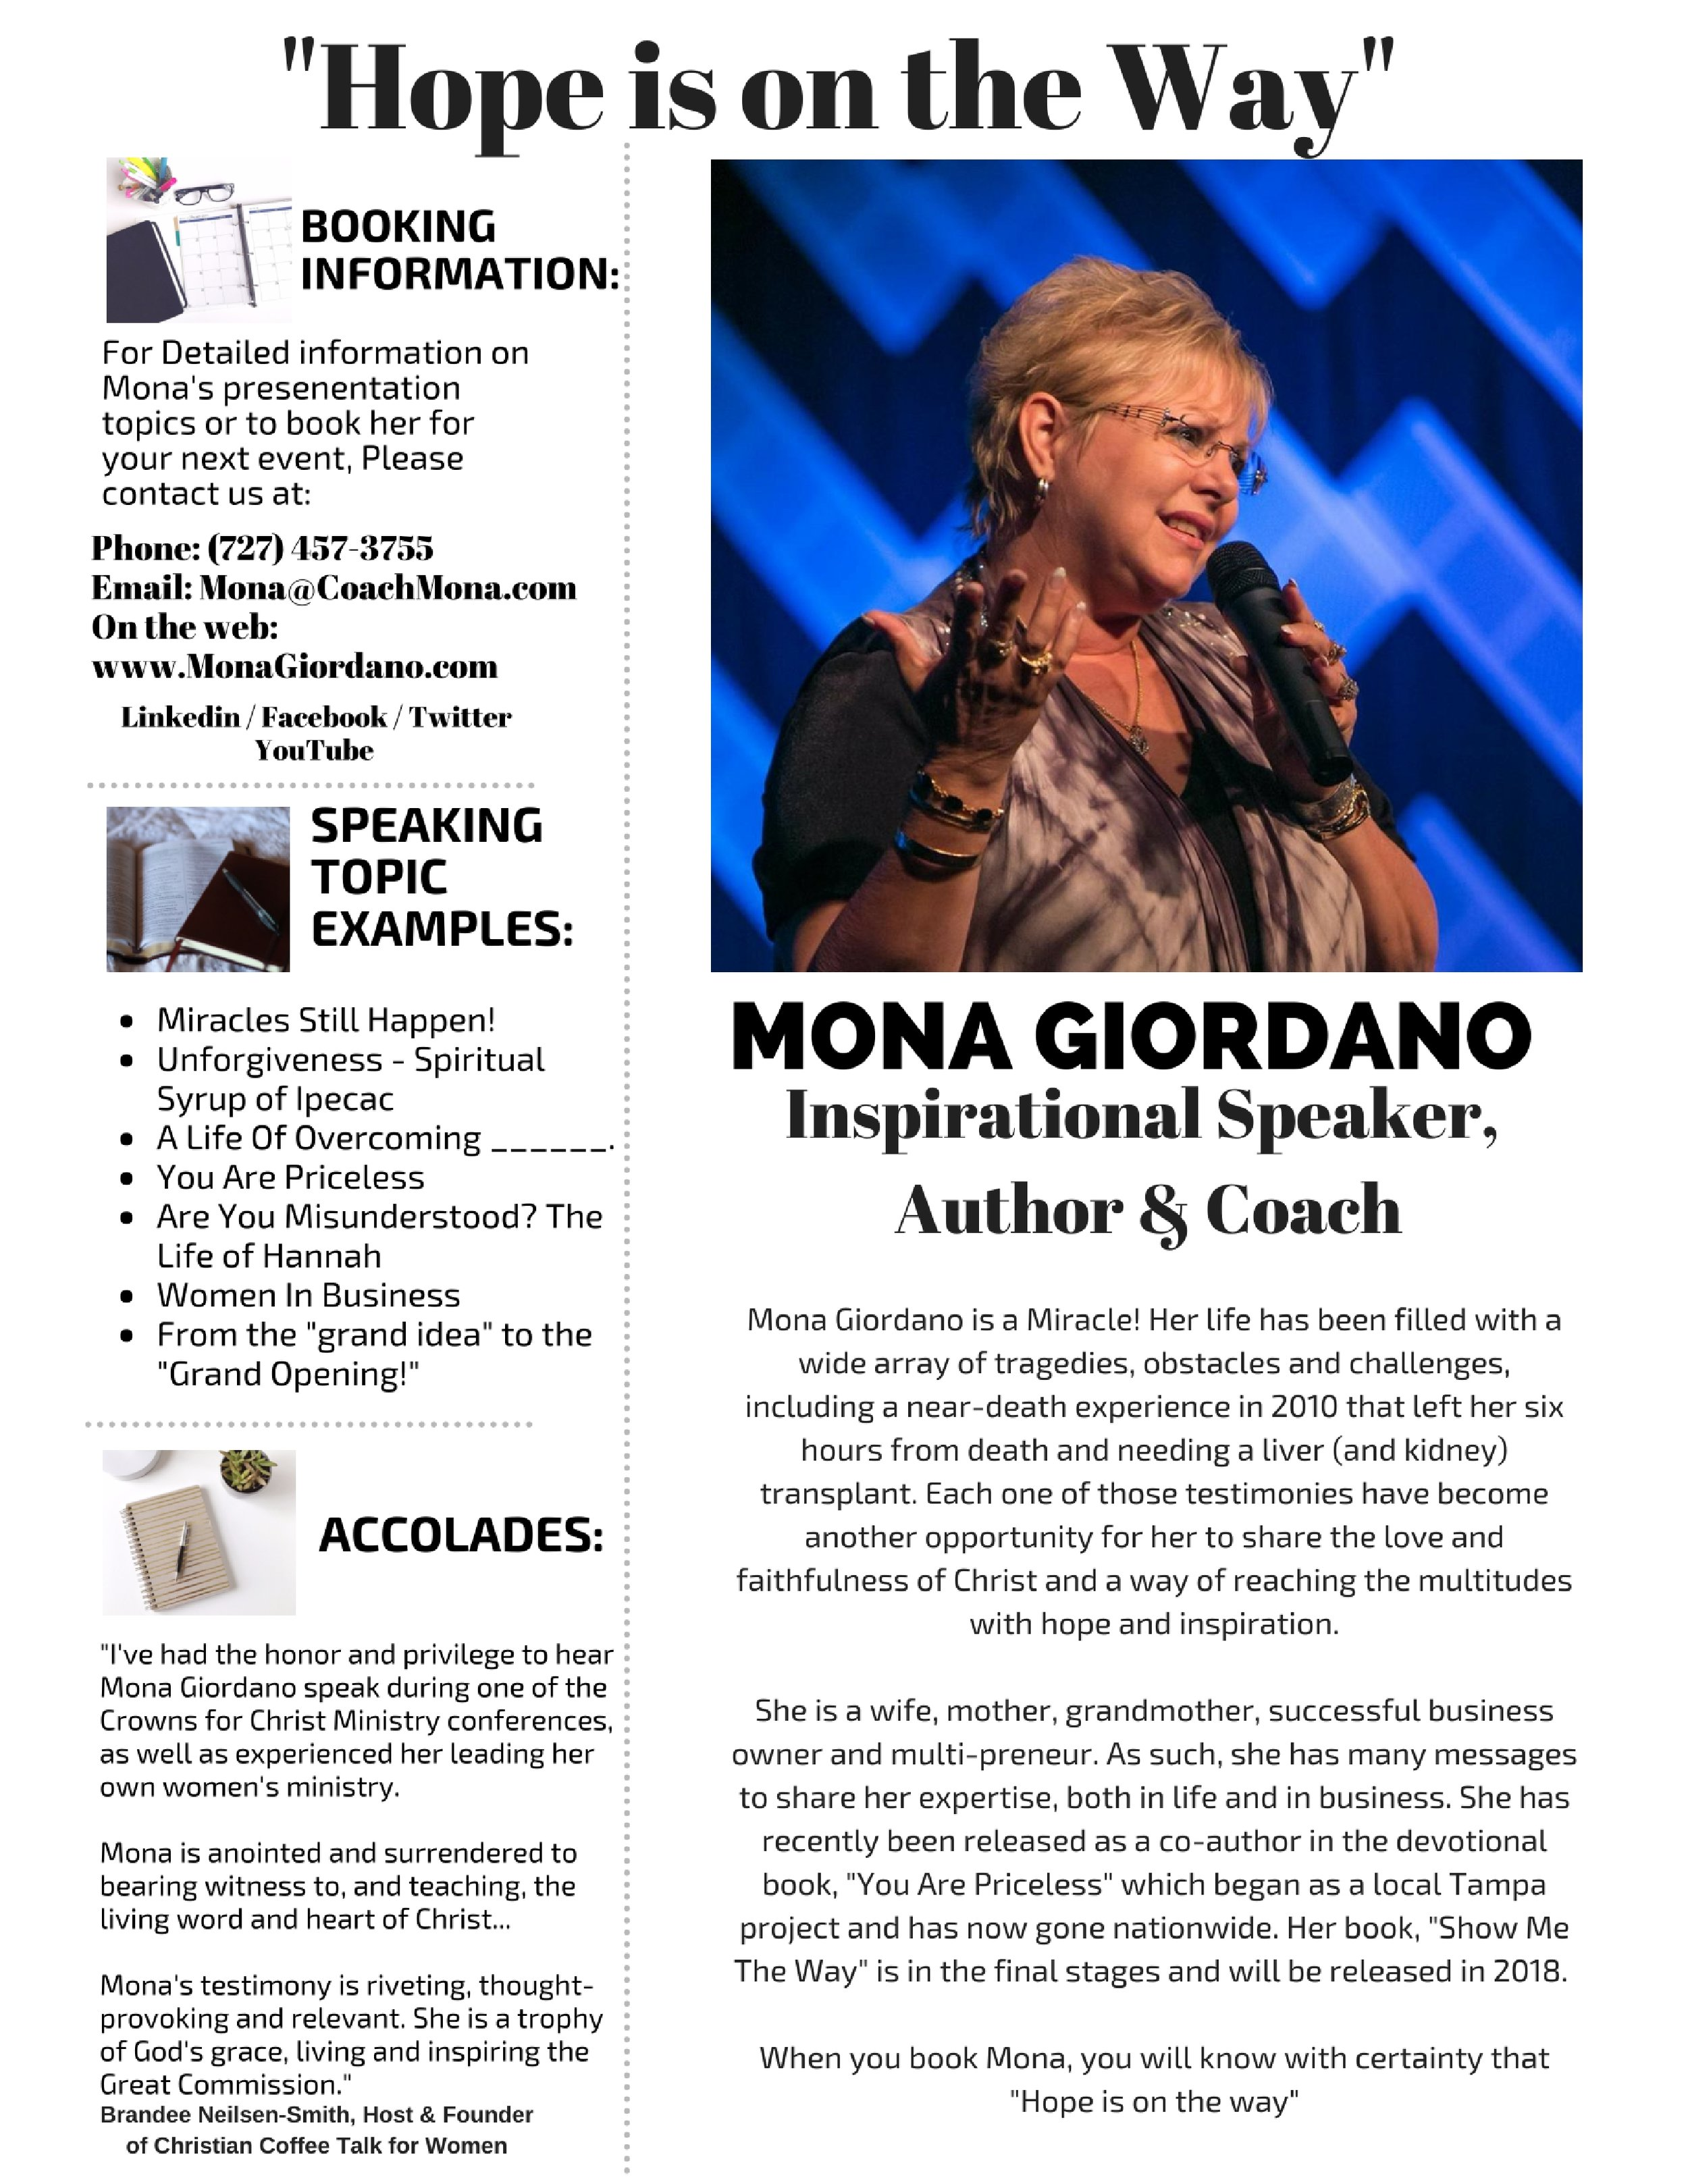 Mona giordano One Sheet.jpg